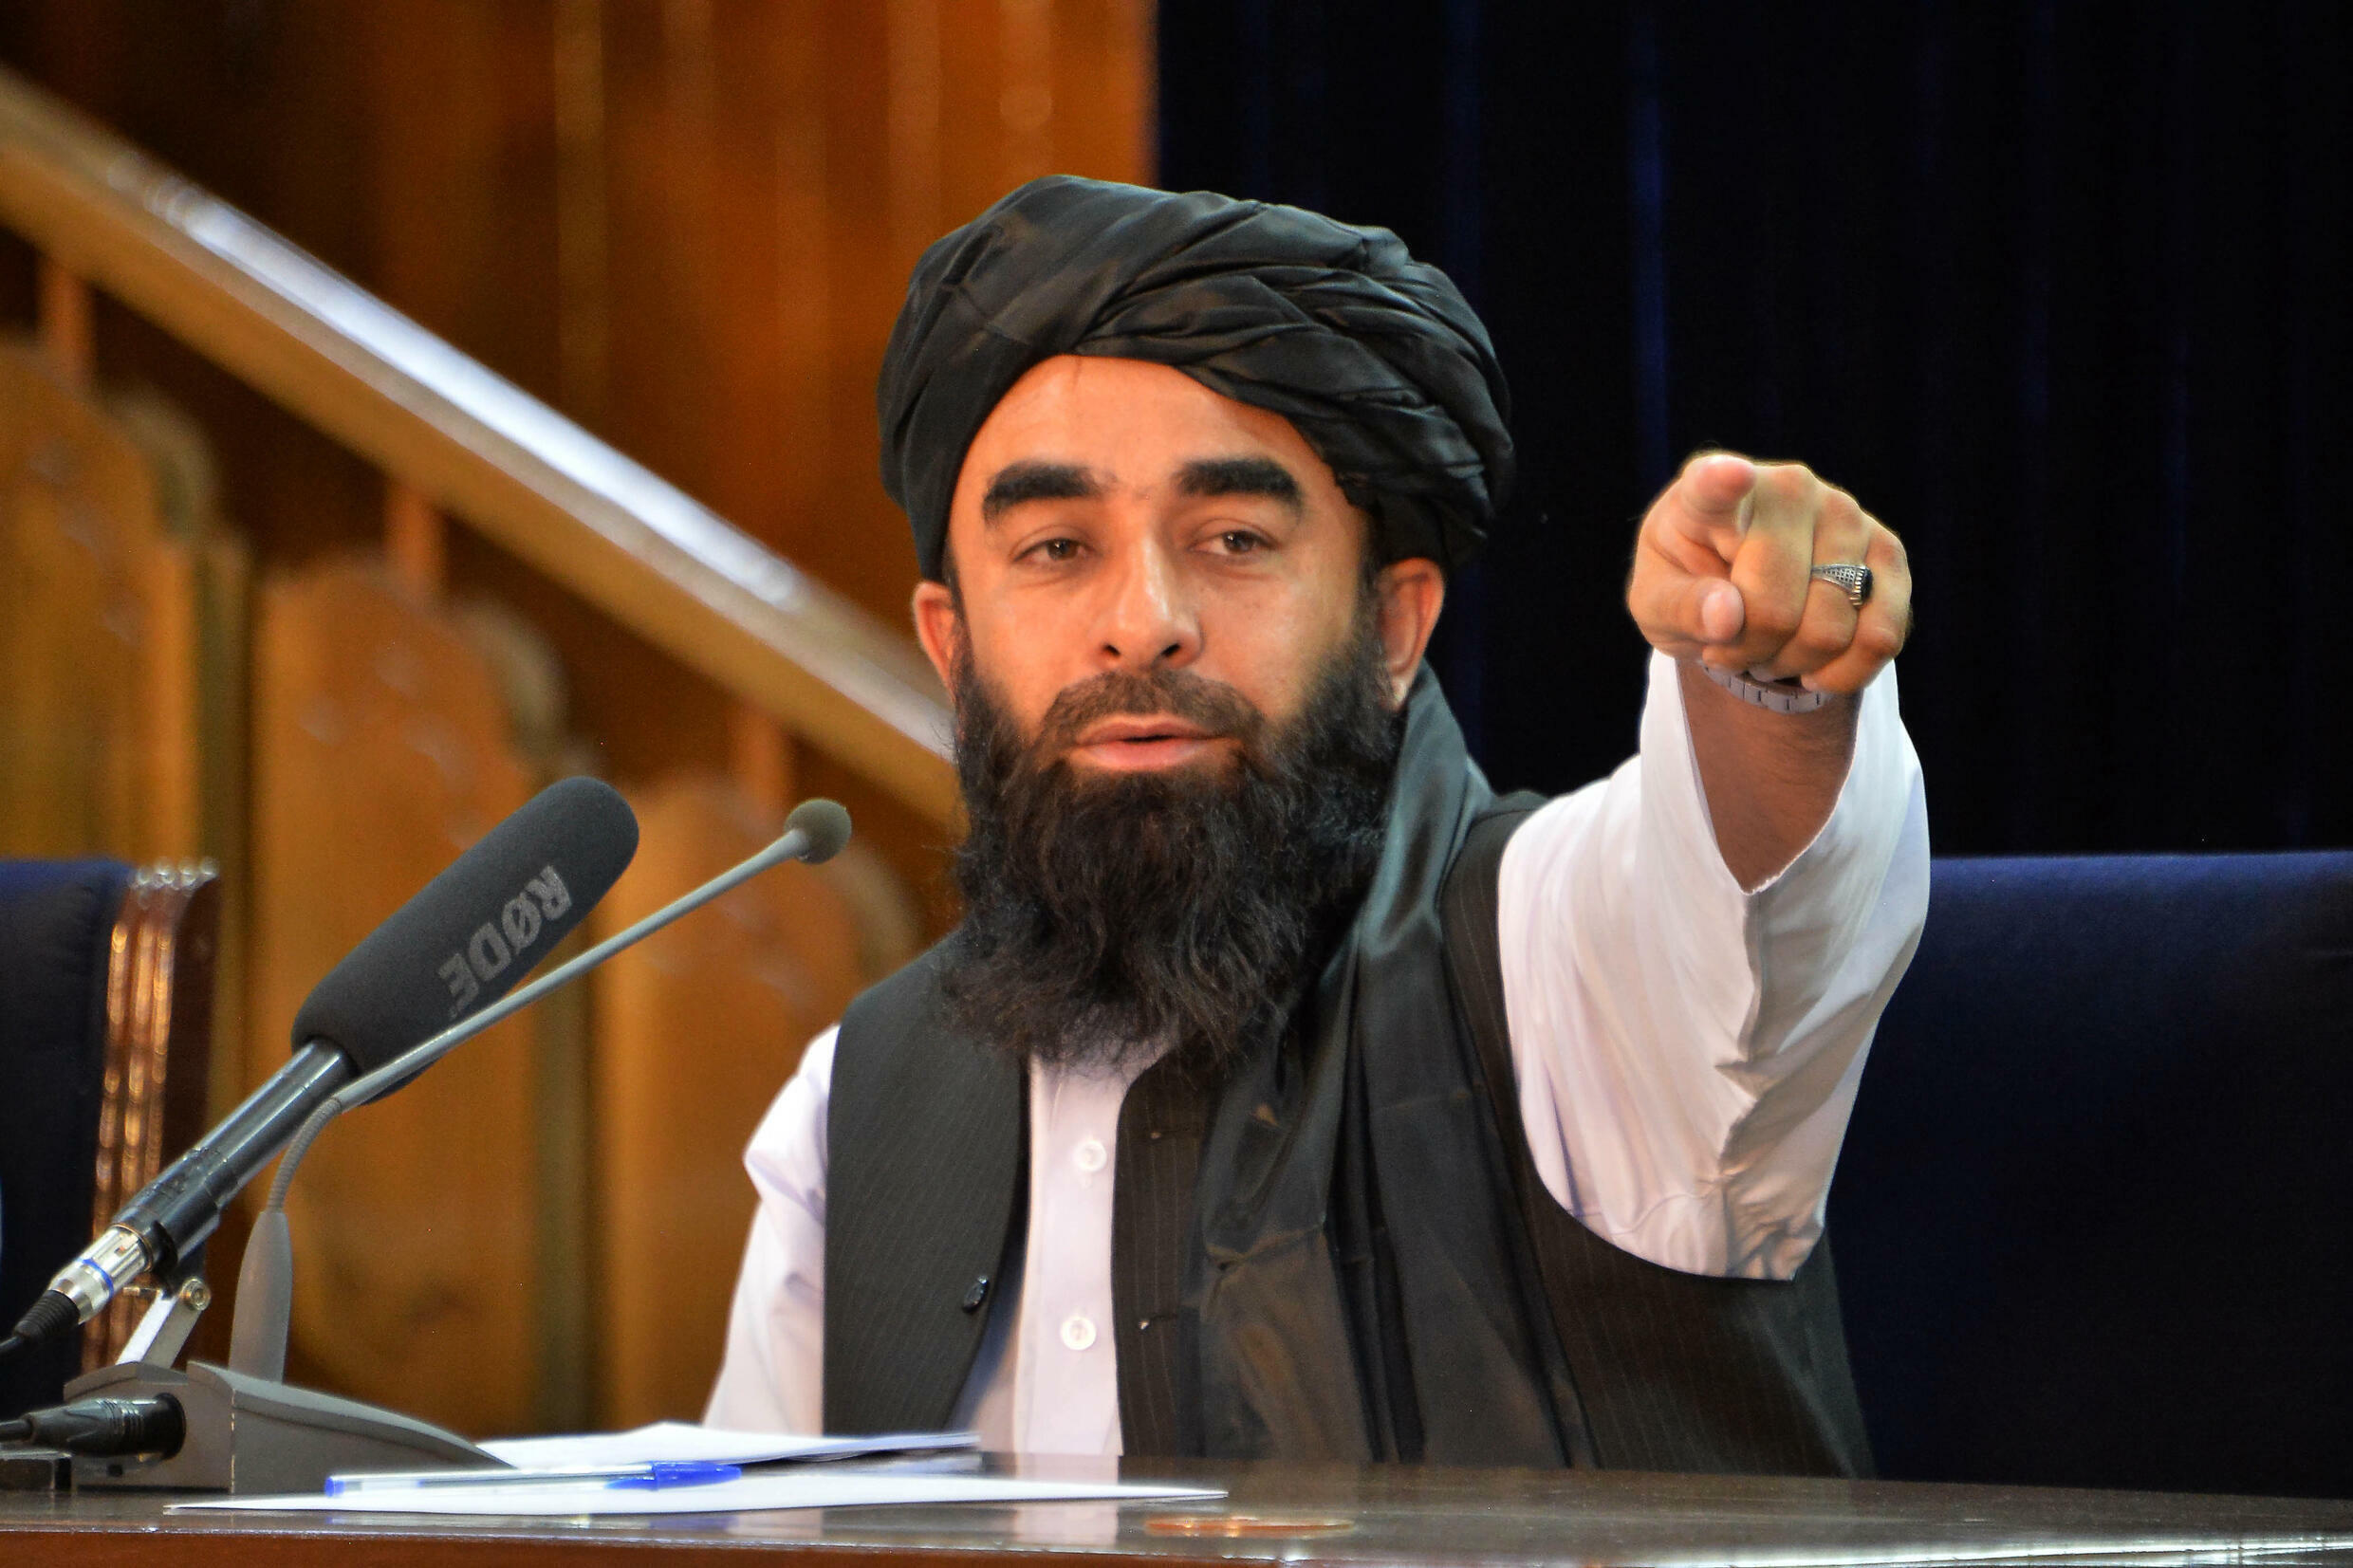 Days after the Taliban captured Kabul, spokesman Zabihullah Mujahid presented himself to the public for the first time